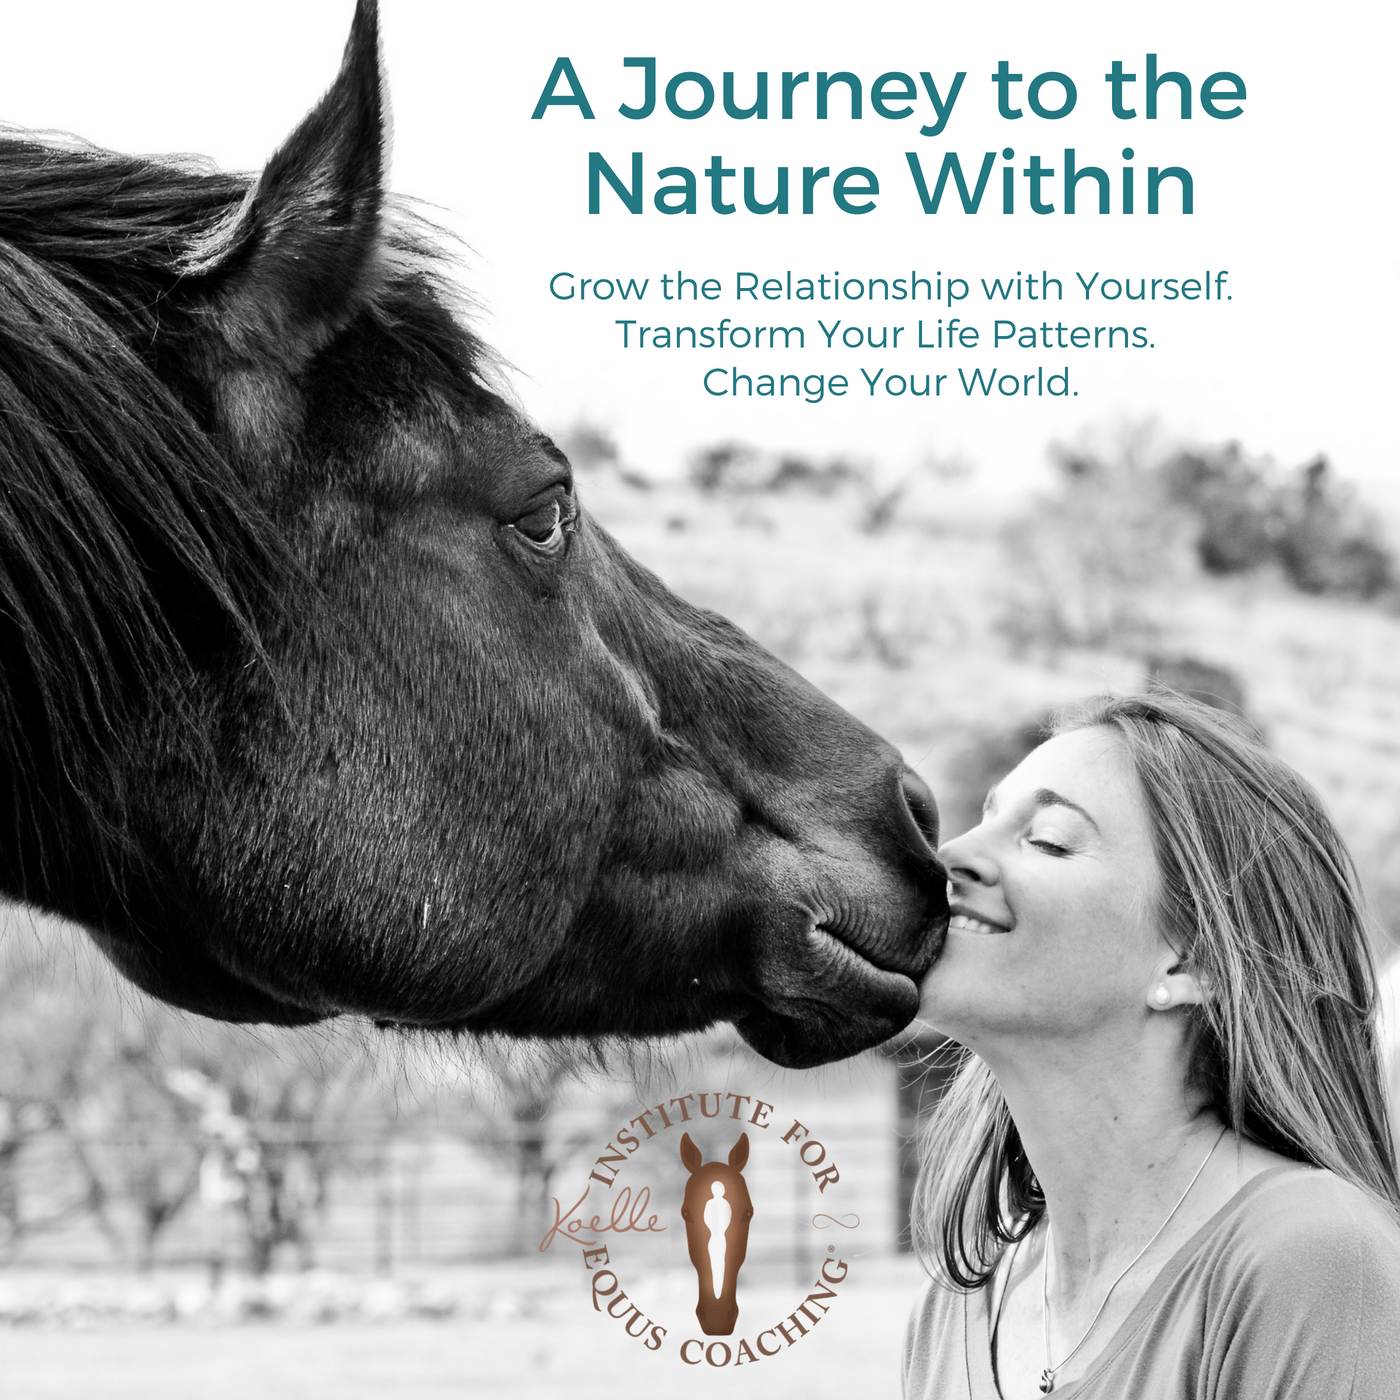 A Journey to the Nature Within